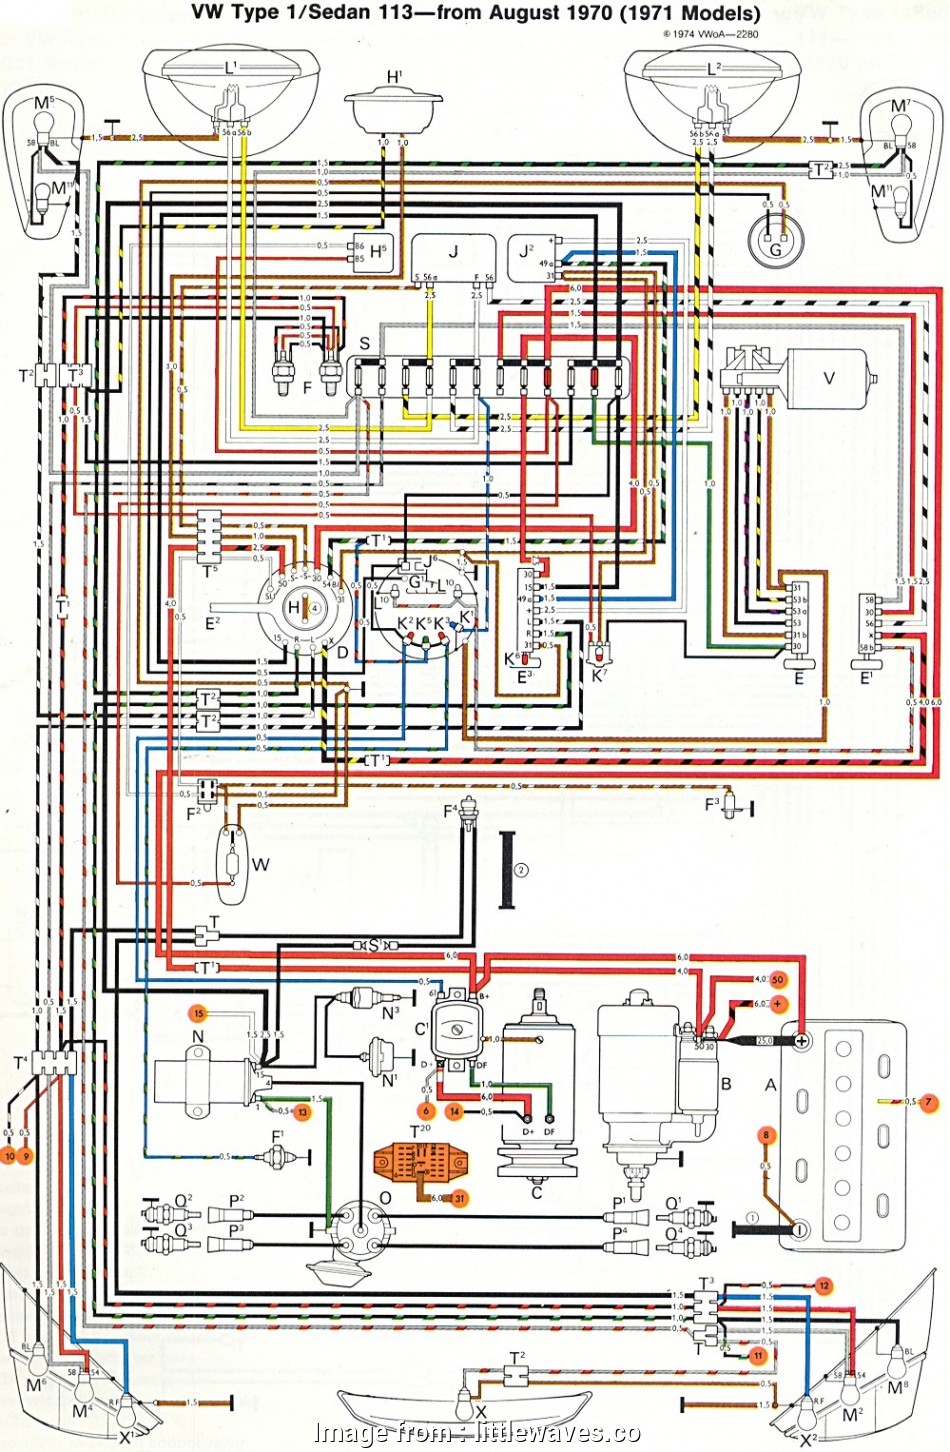 1970 Vw Beetle Headlight Switch Wiring Diagram from tonetastic.info